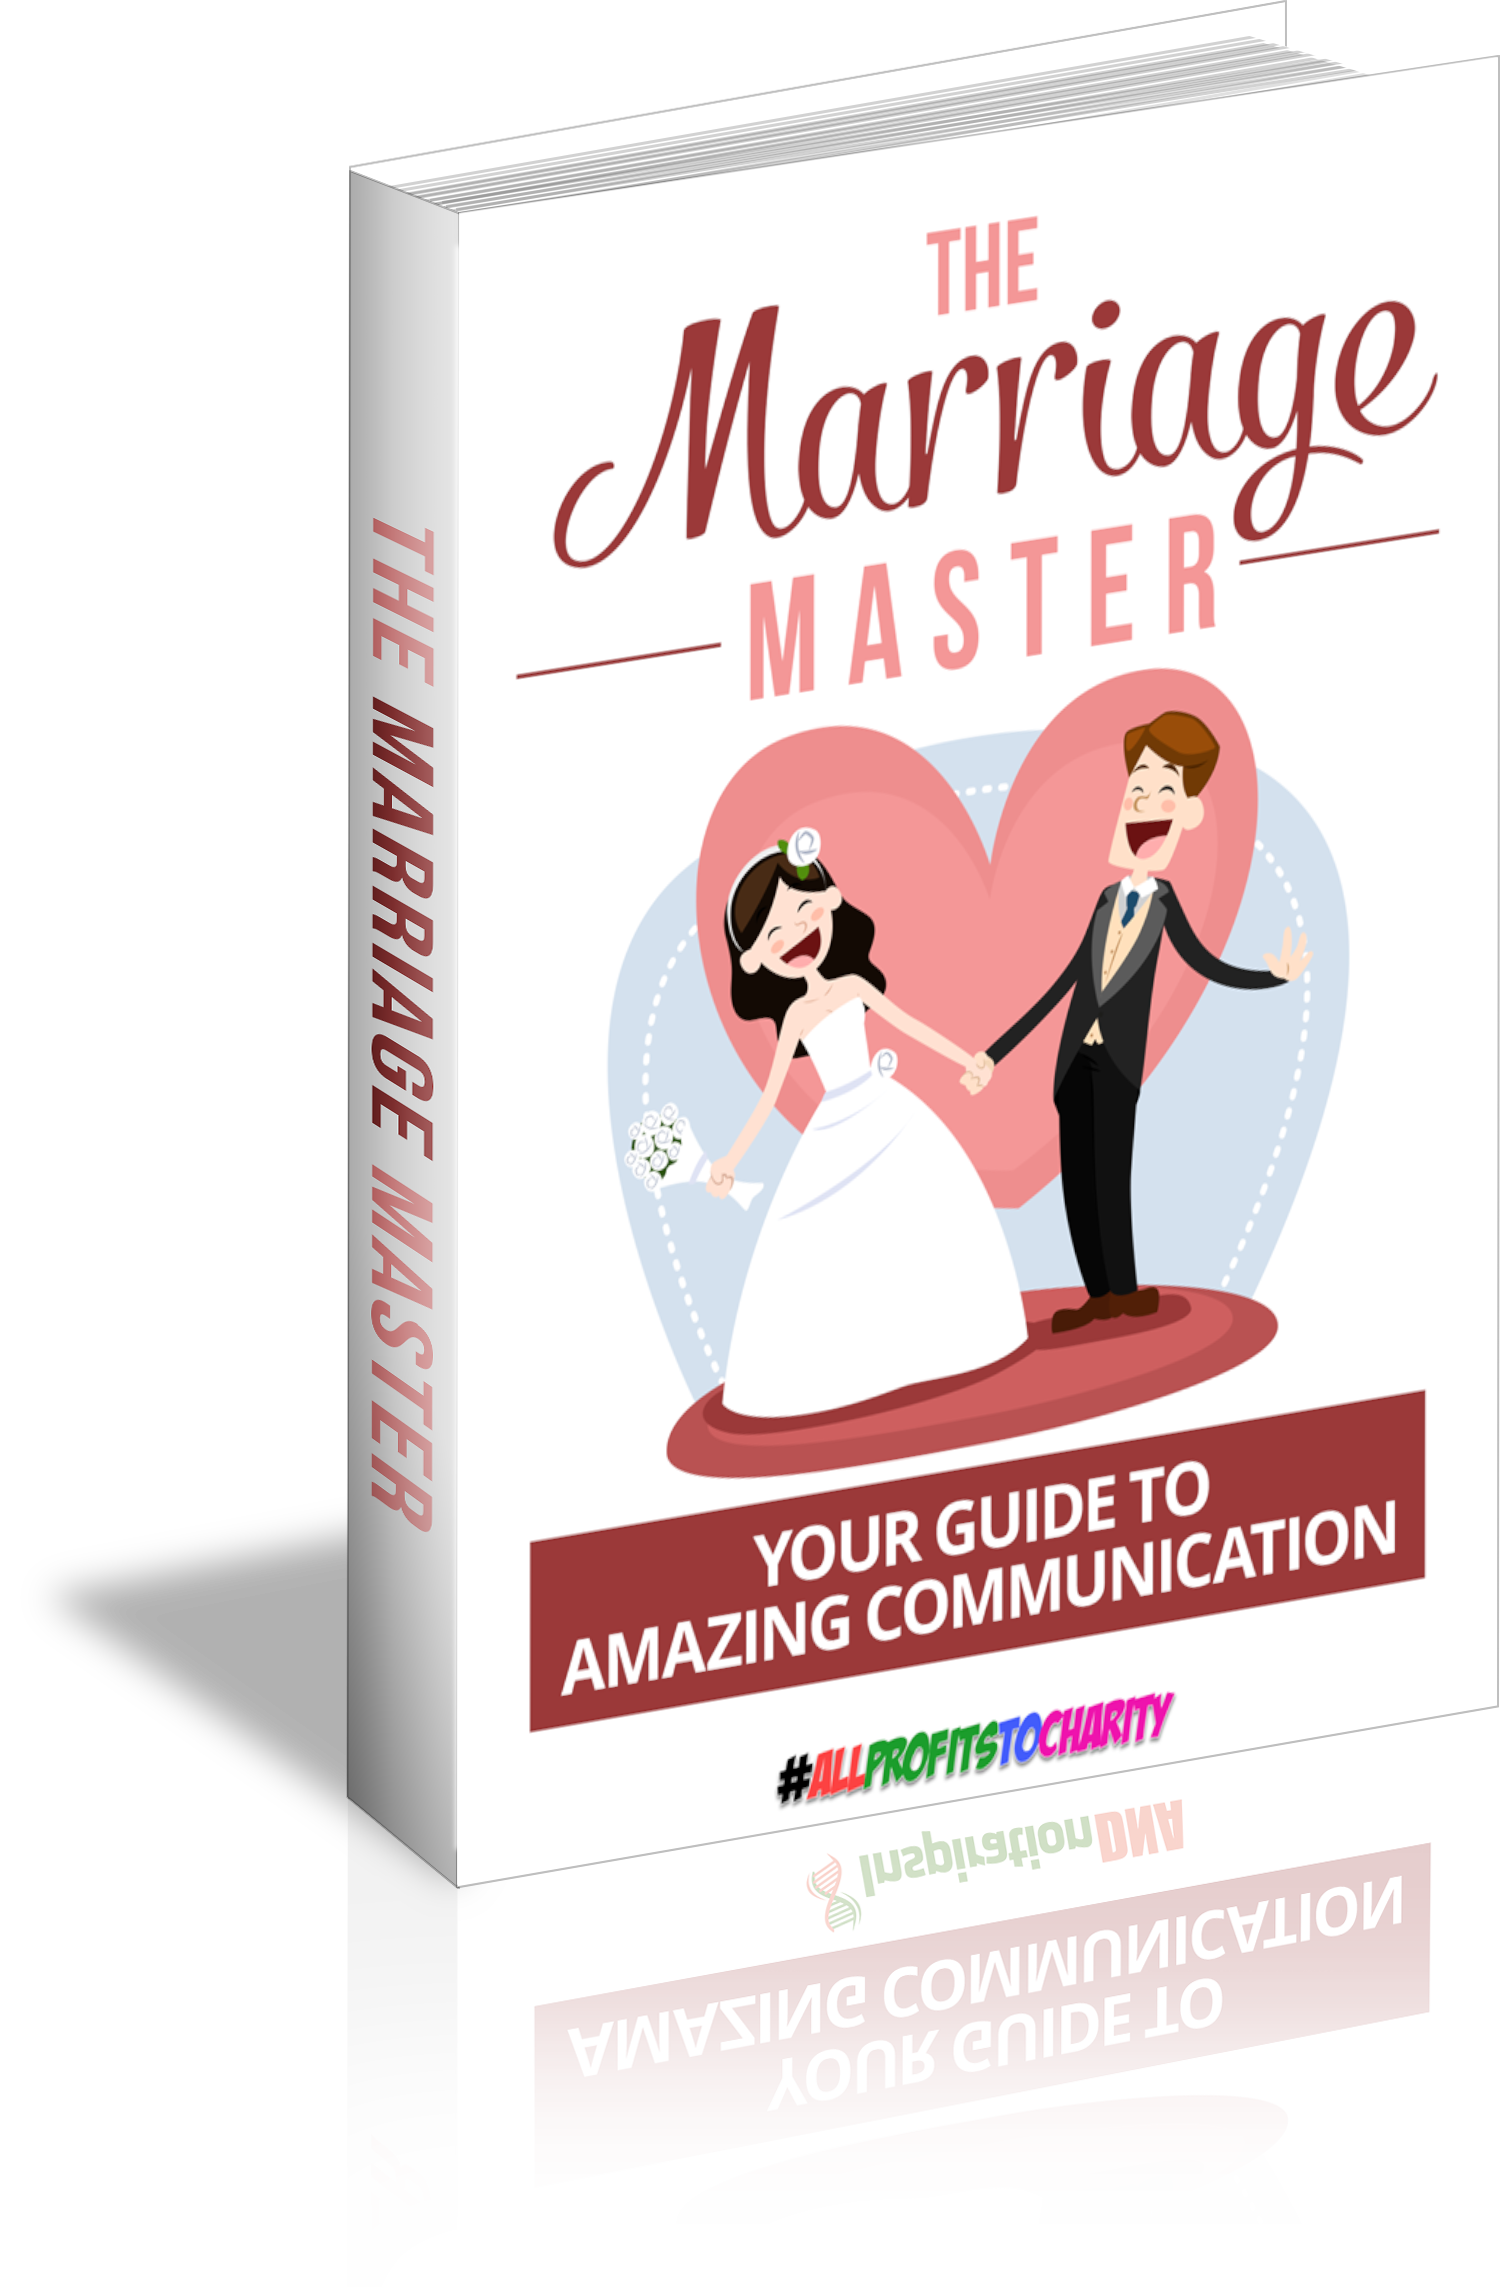 The Marriage Master cover